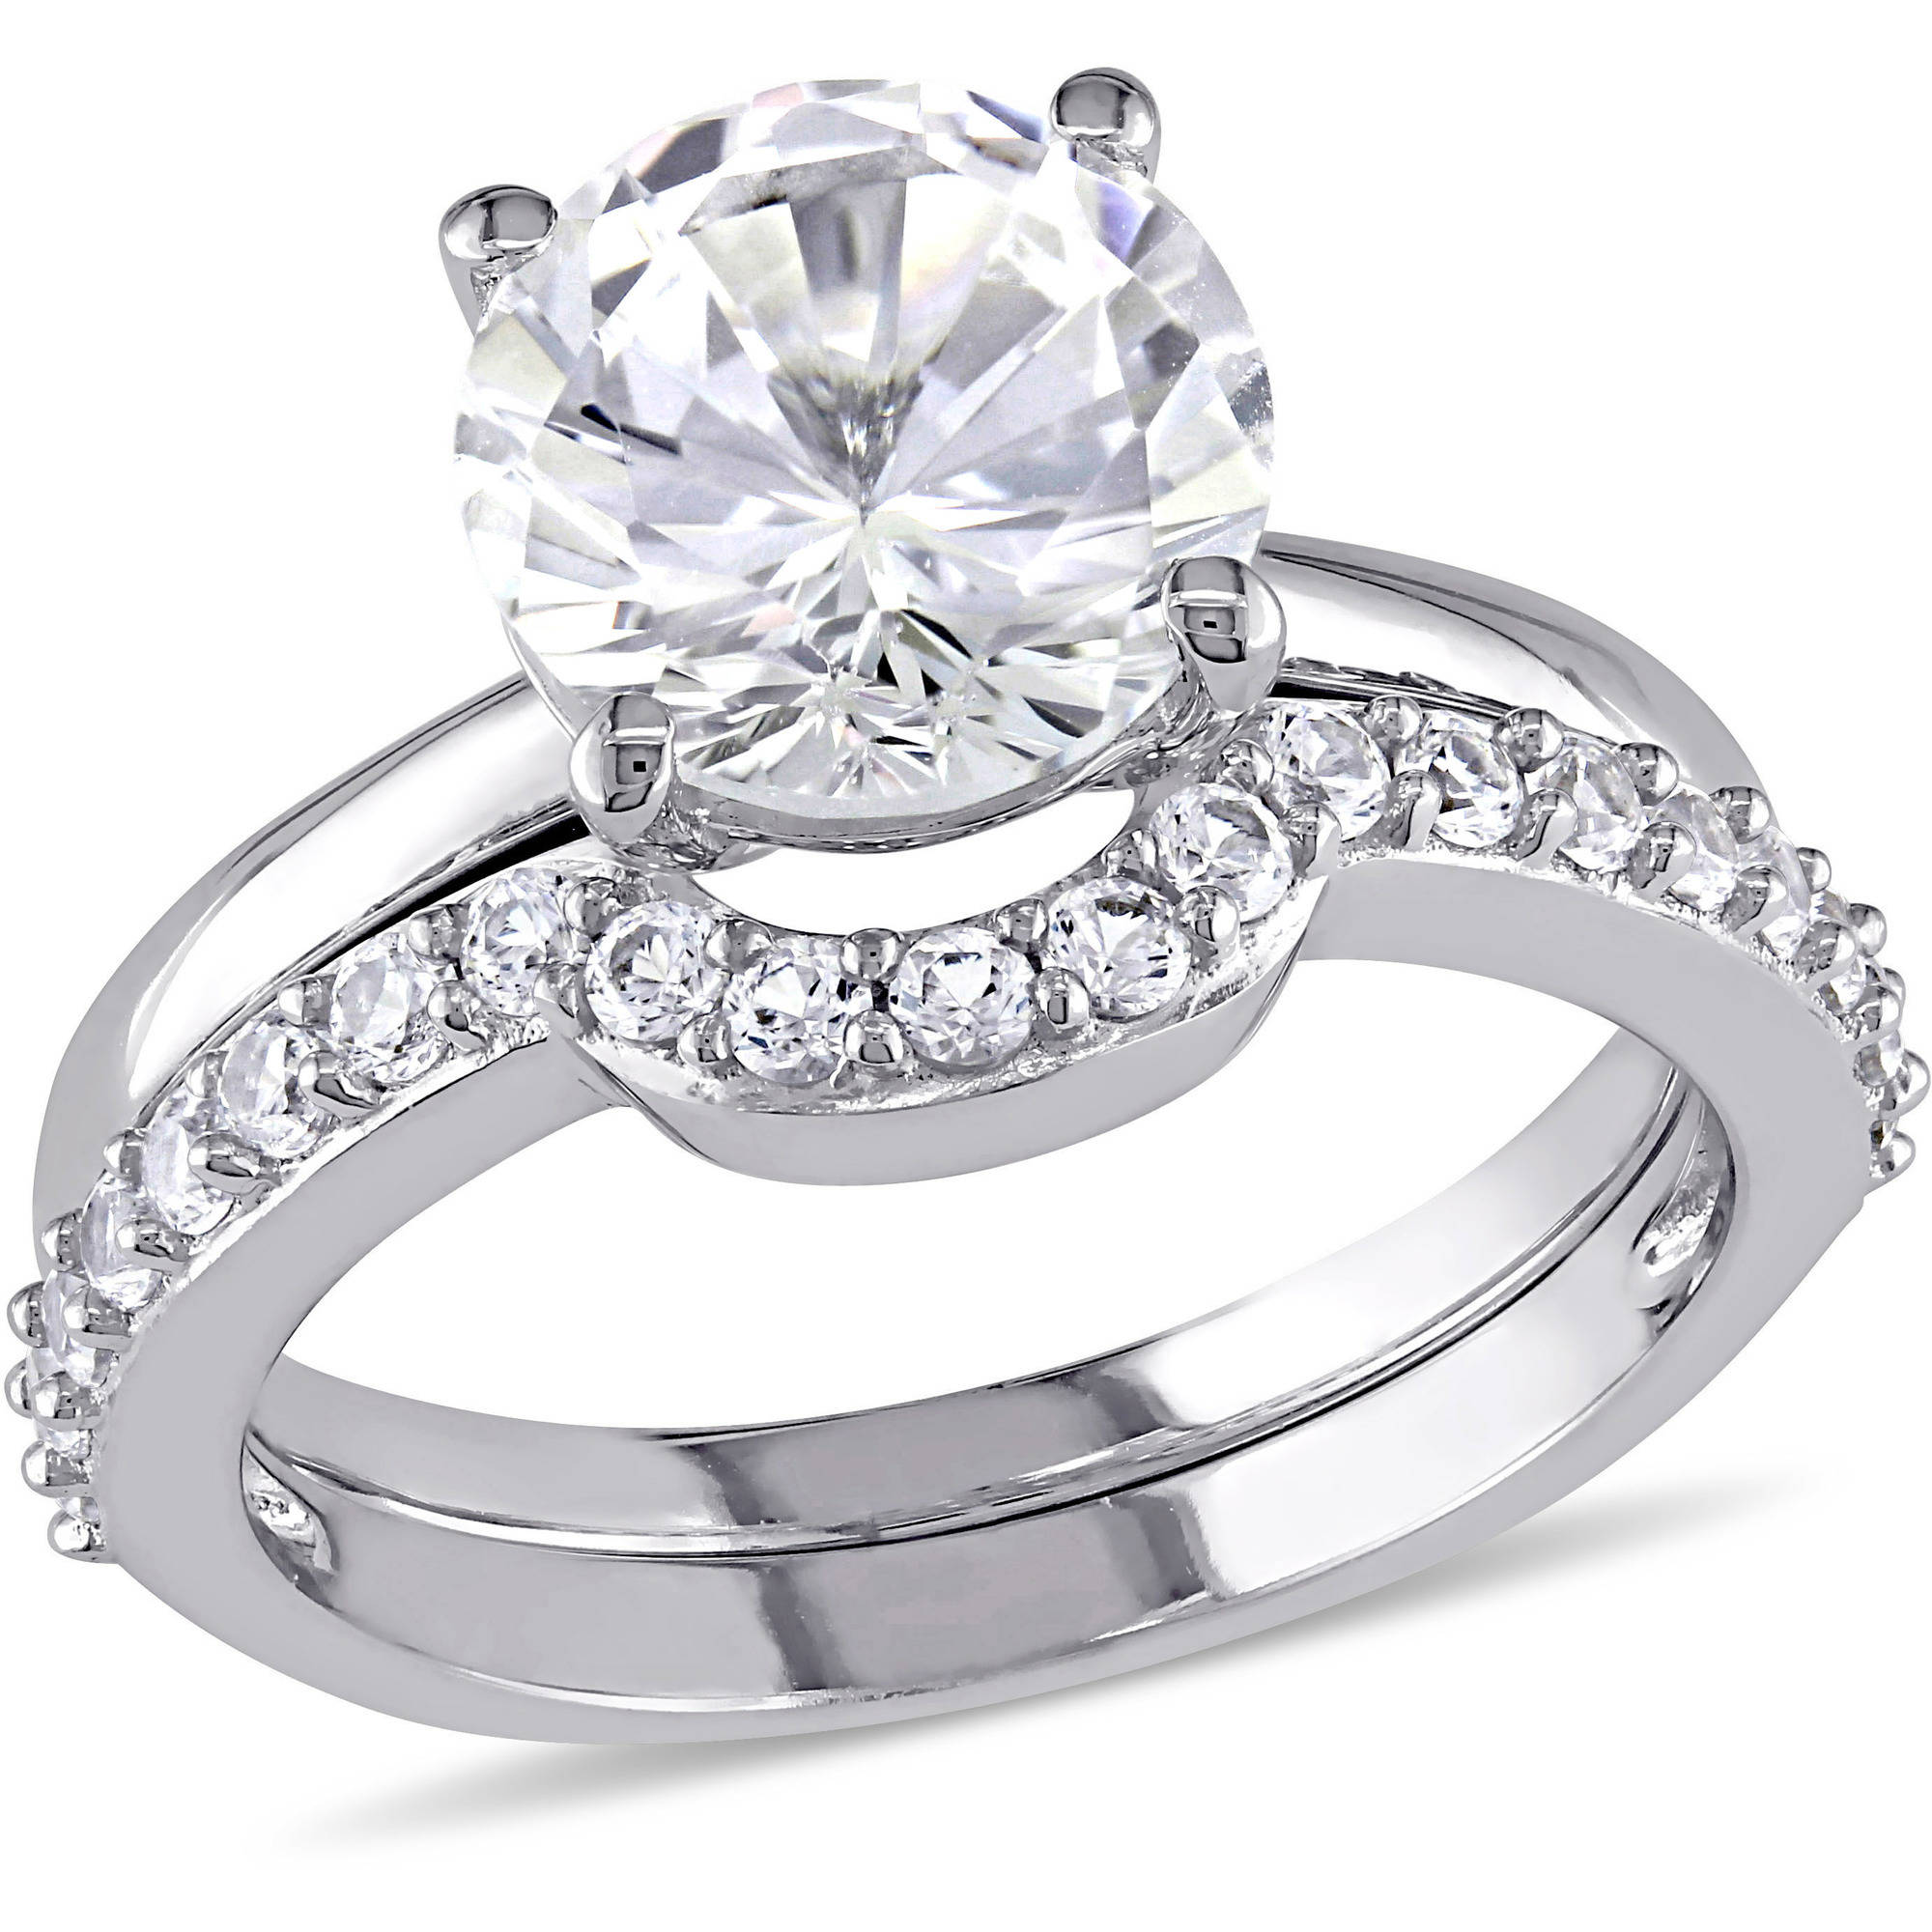 Miabella 2-4/5 Carat T.G.W. Created White Sapphire 10kt White Gold Bridal Set